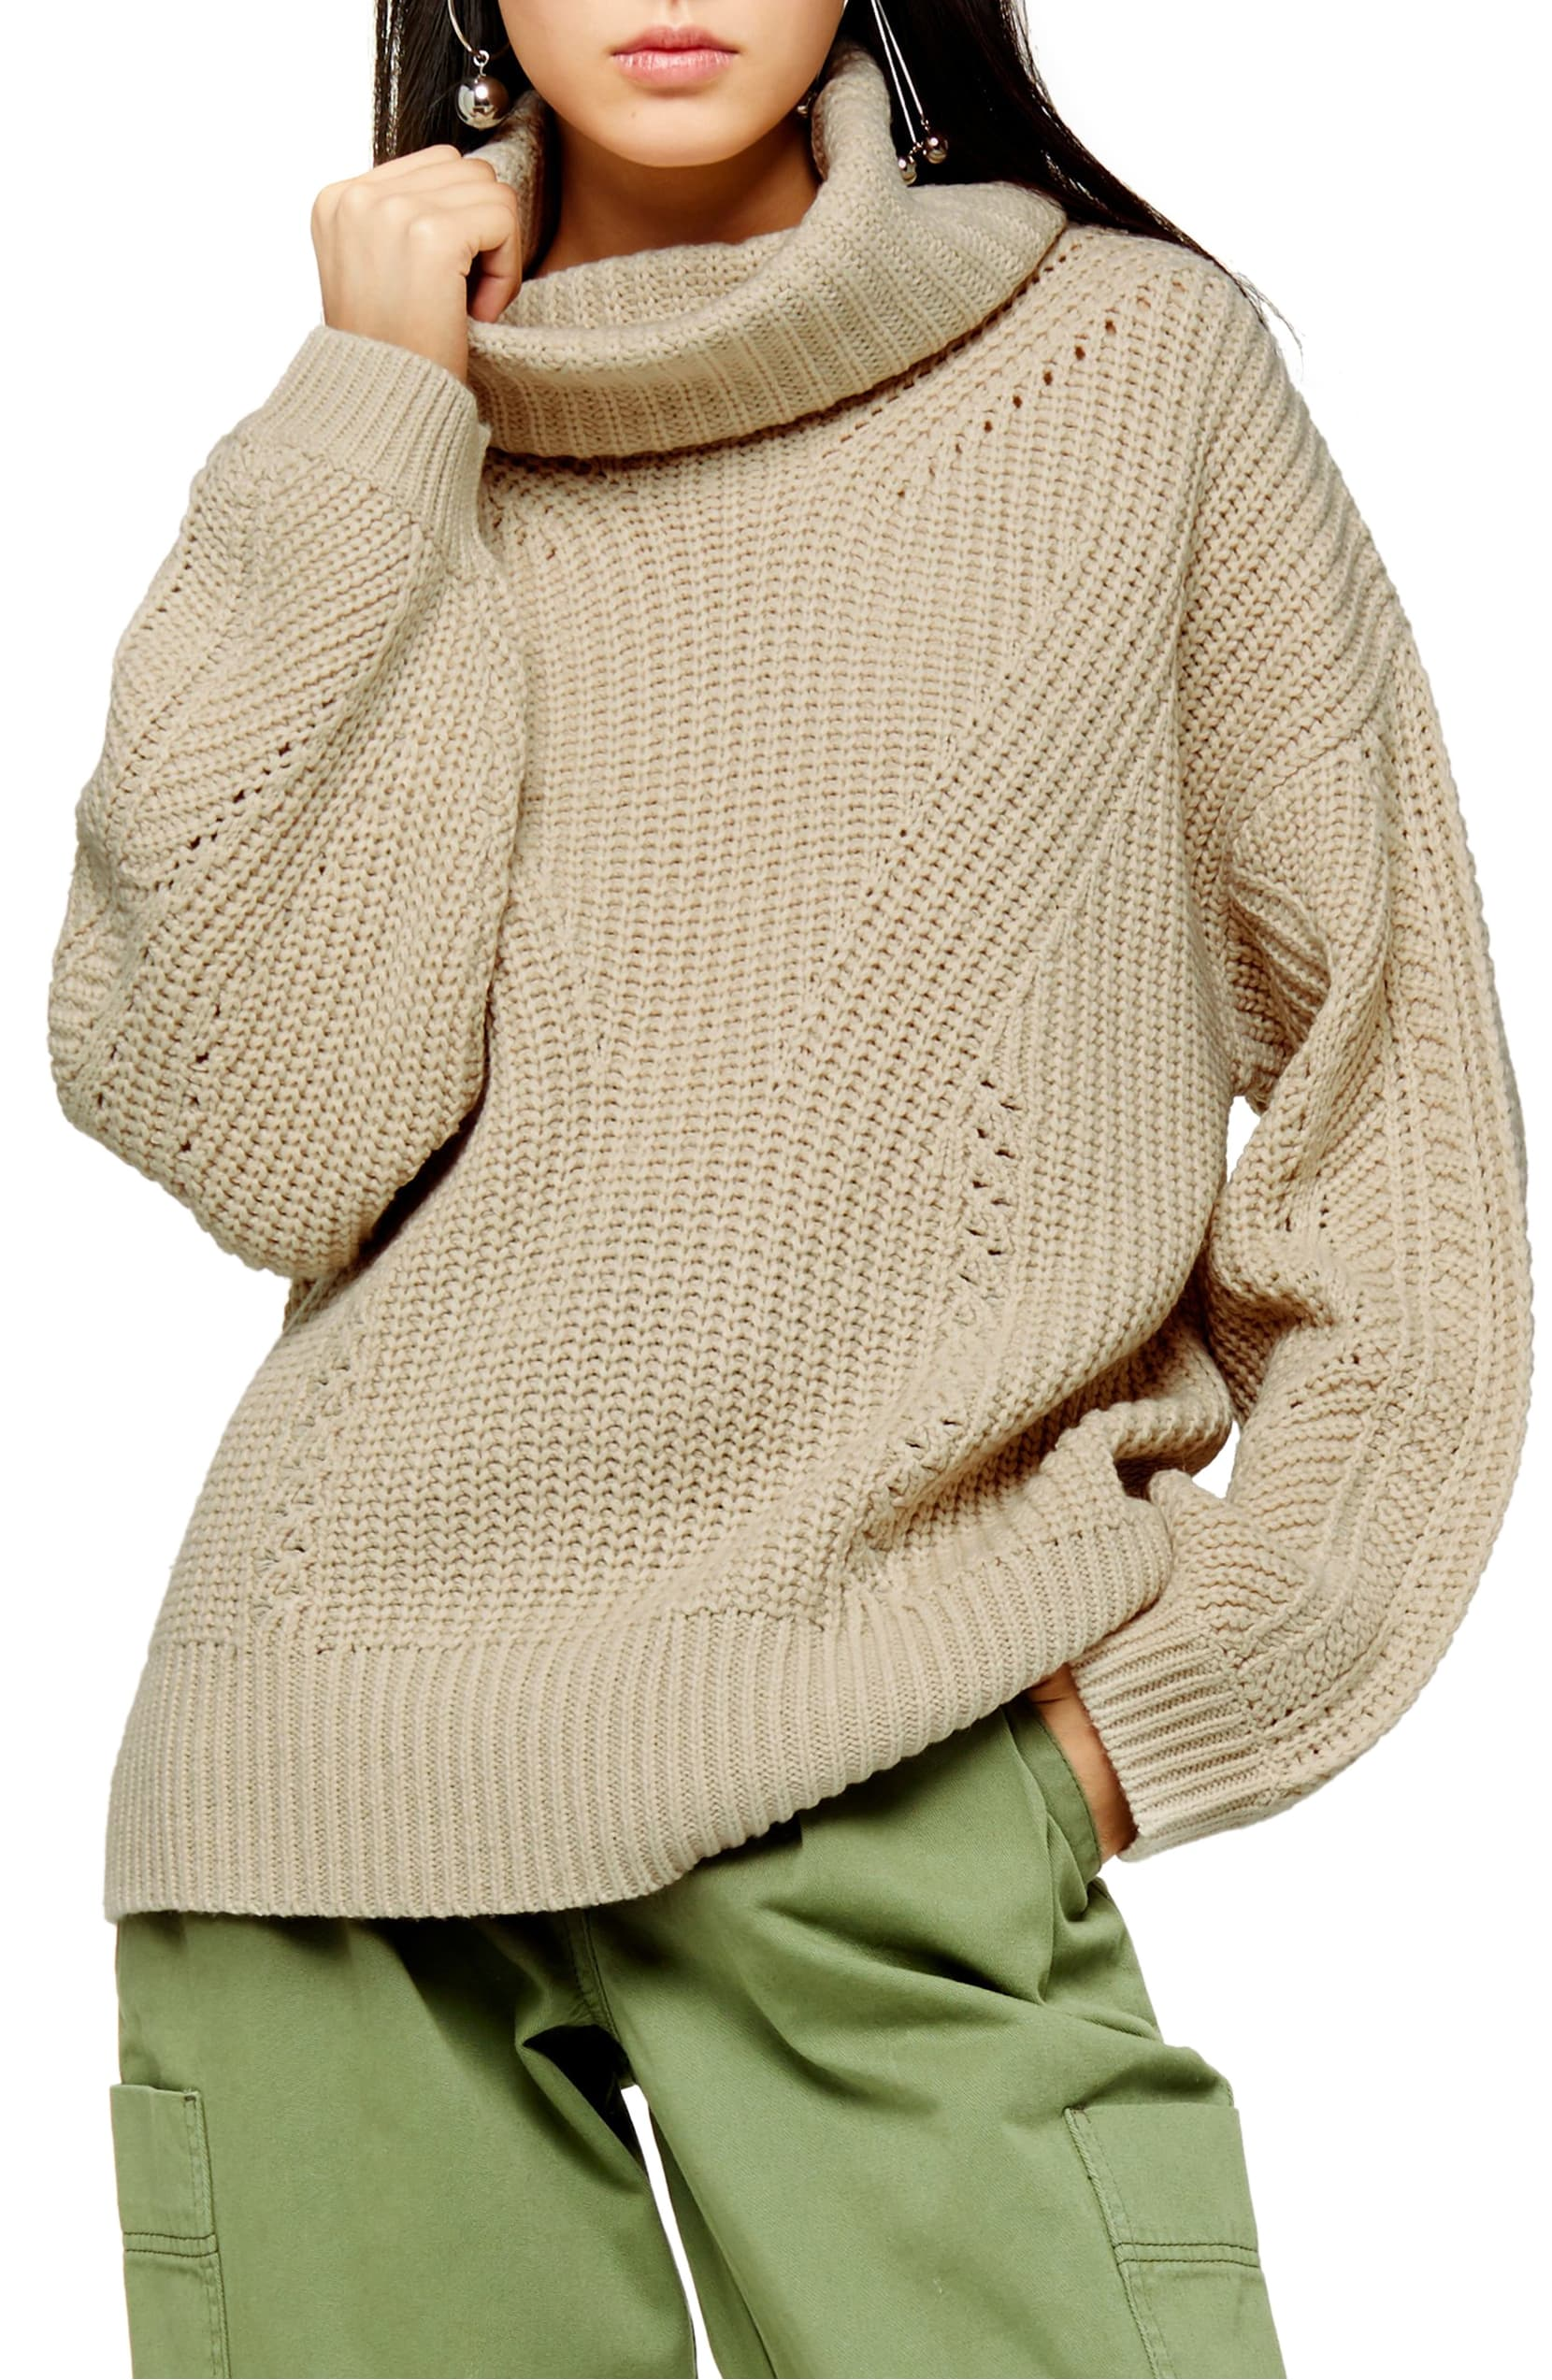 An exaggerated turtleneck adds contemporary appeal to this soft and perfectly slouchy sweater. Shop it{ }- $75. (Image: Nordstrom){ }